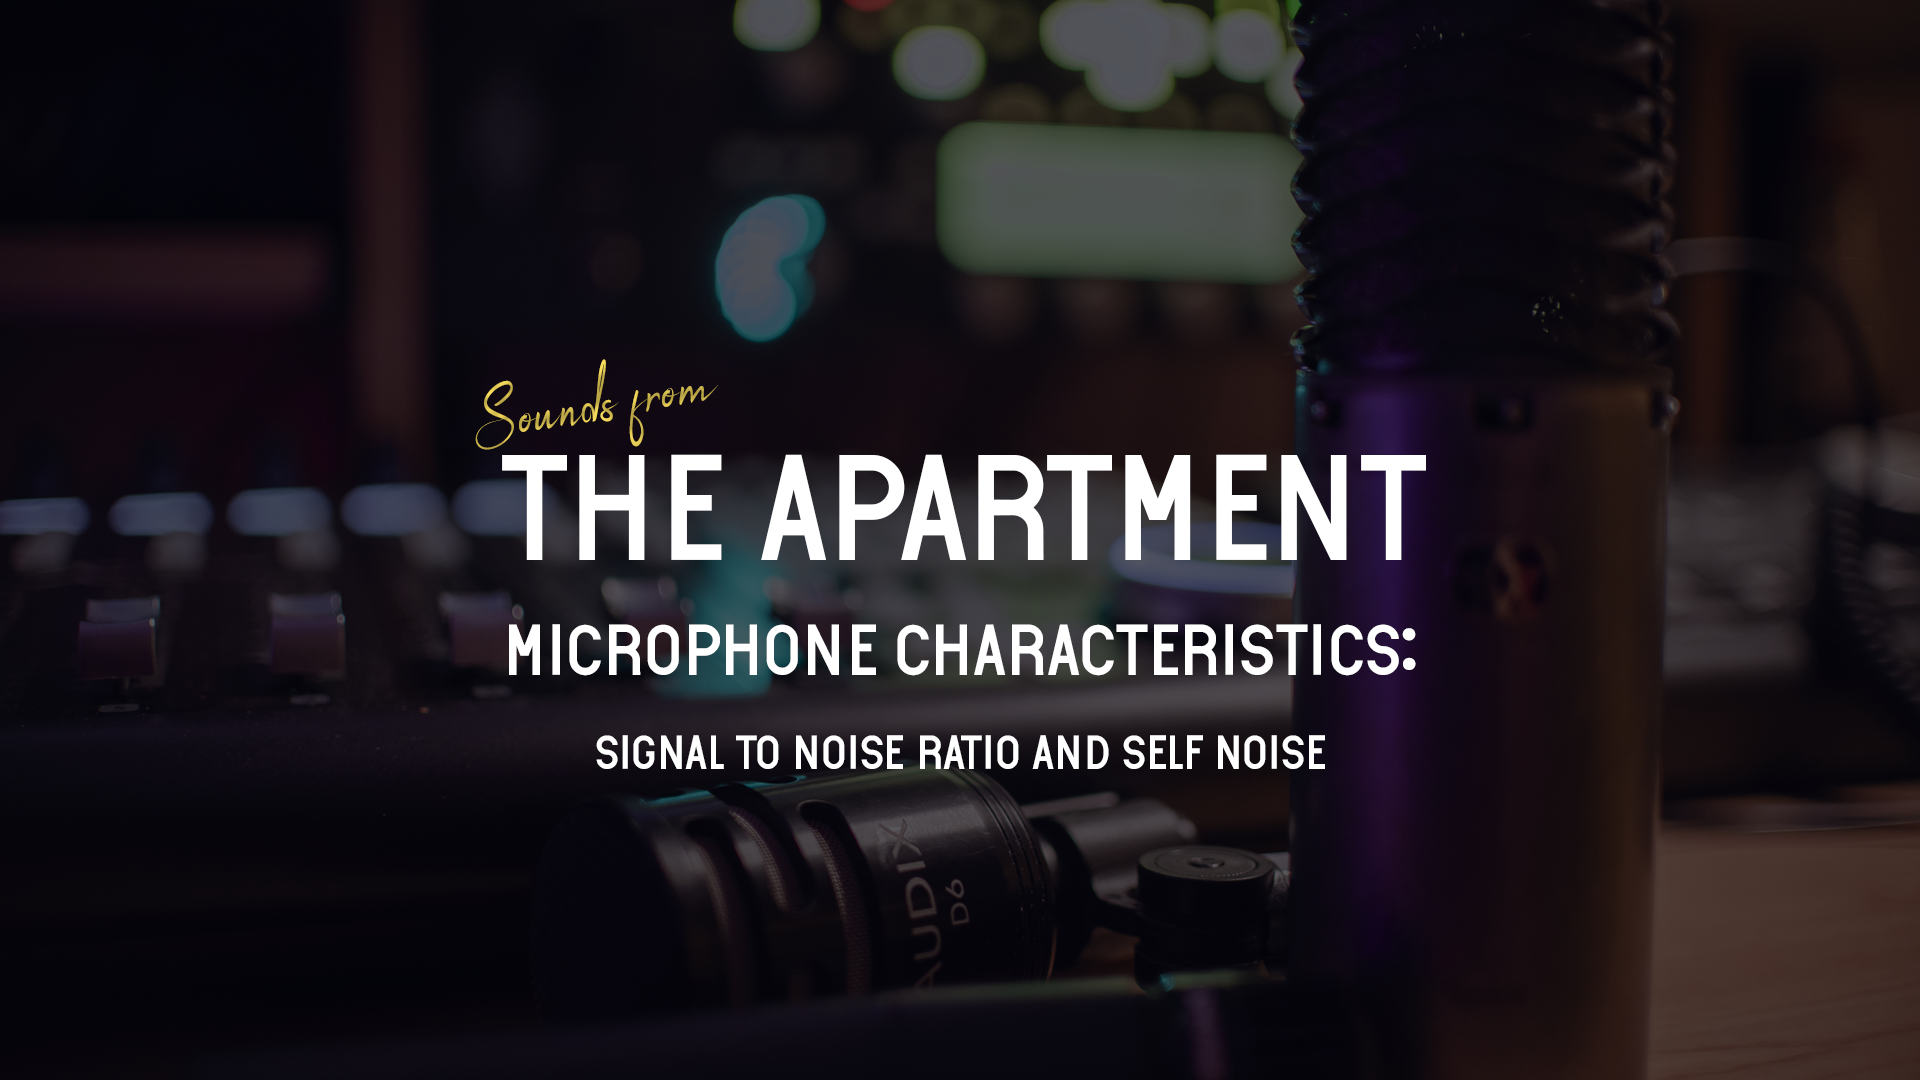 Sounds from the apartment article signal to noise ratio and self noise